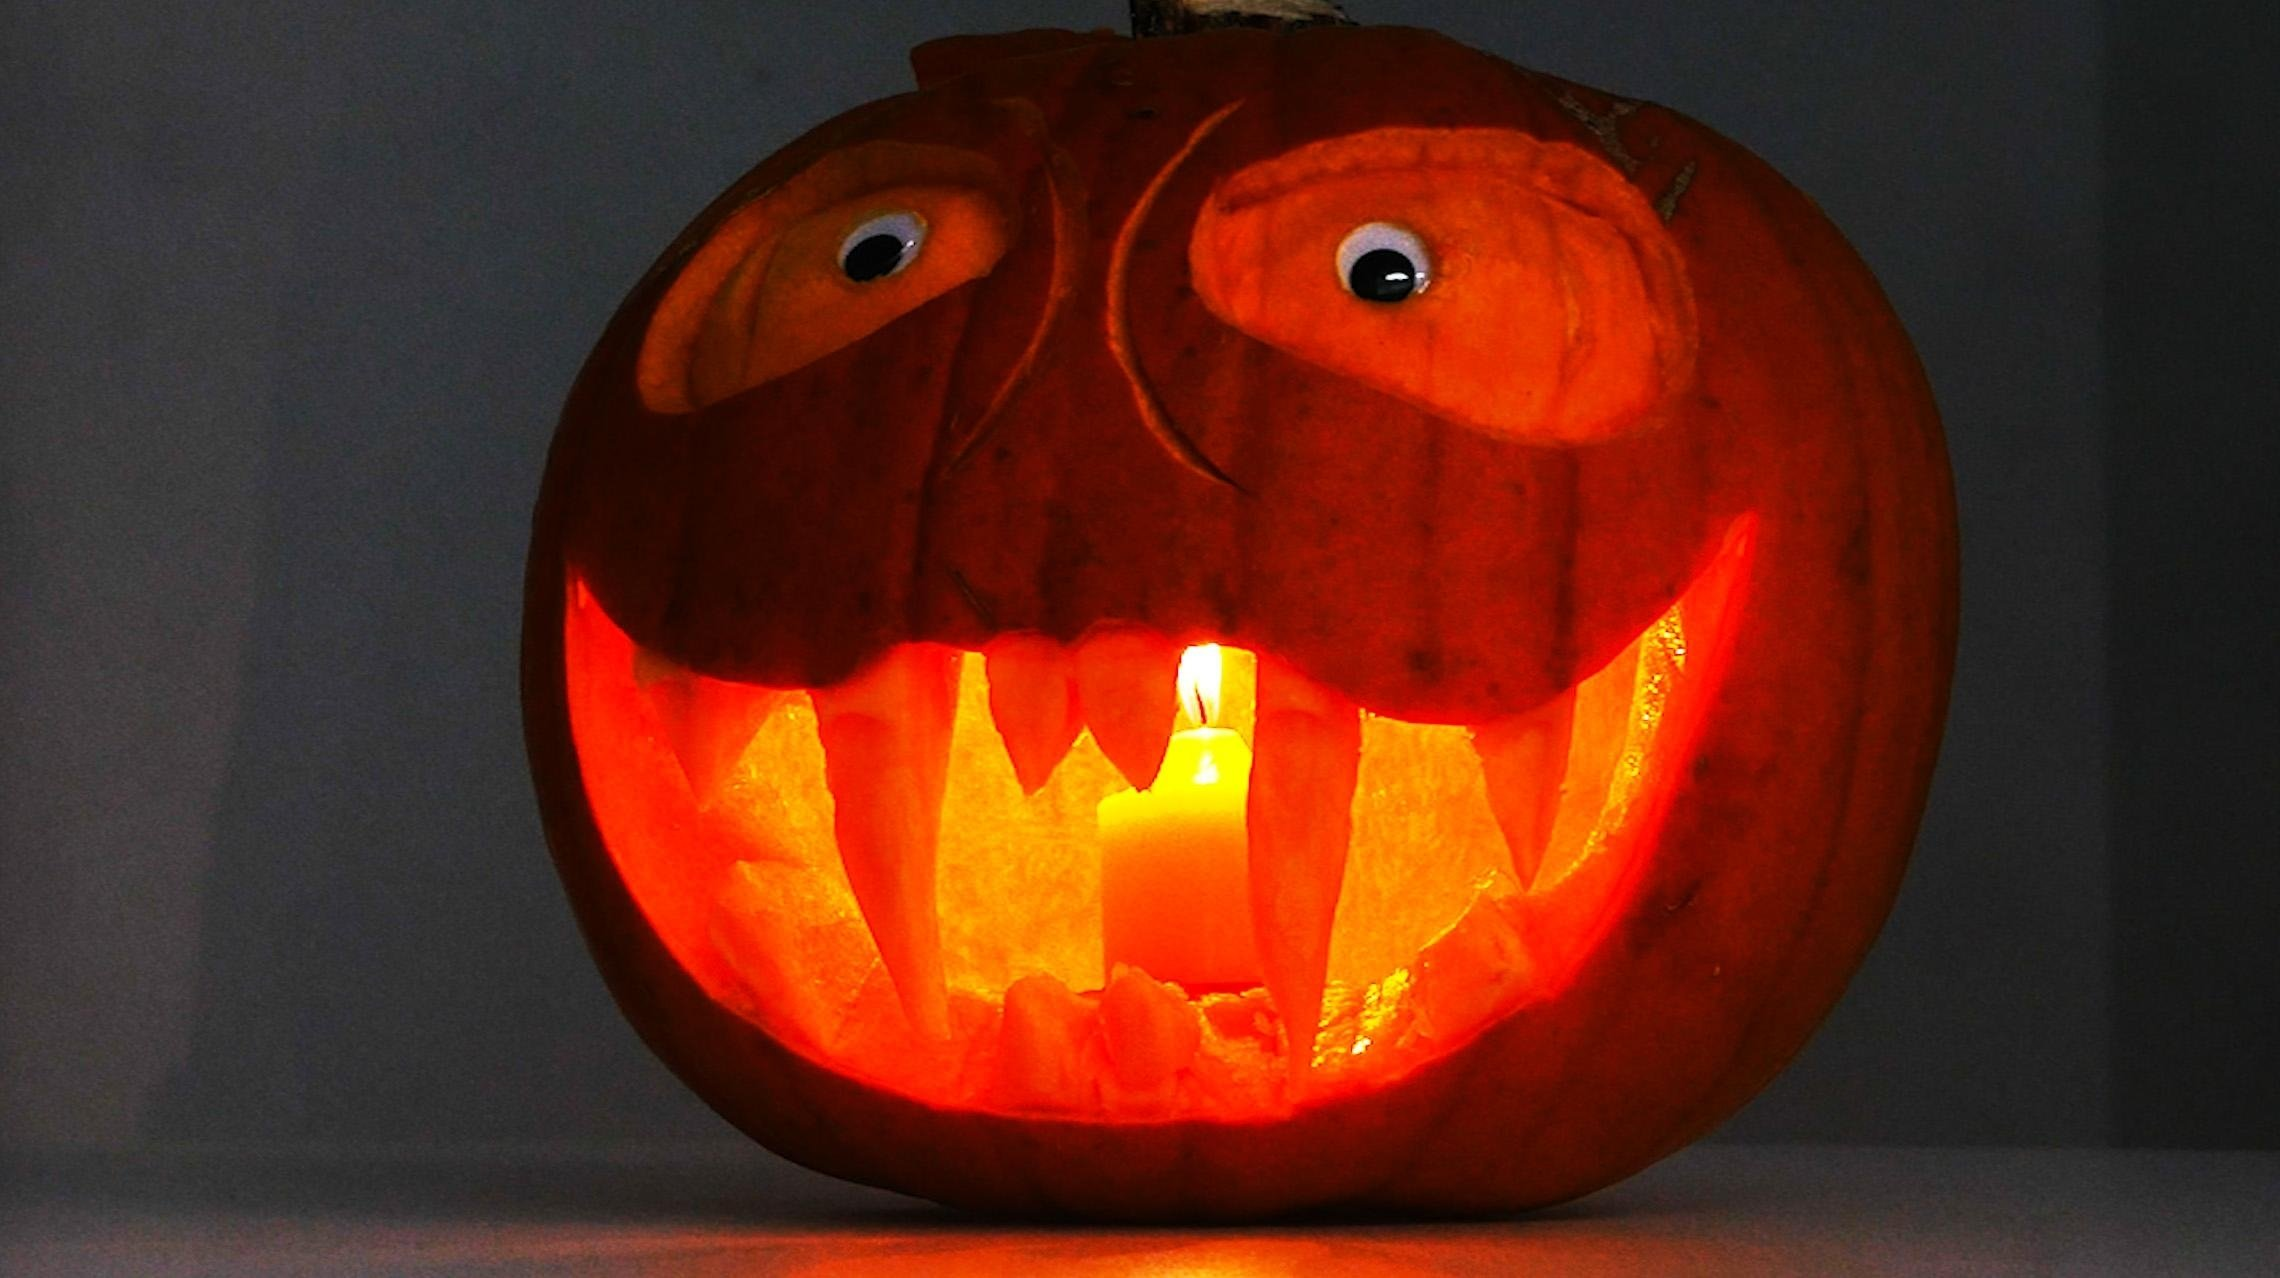 10 Best Jack O Lantern Ideas To Carve pumpkin carving ideas 2017 20 unique designs to make your porch the 2020